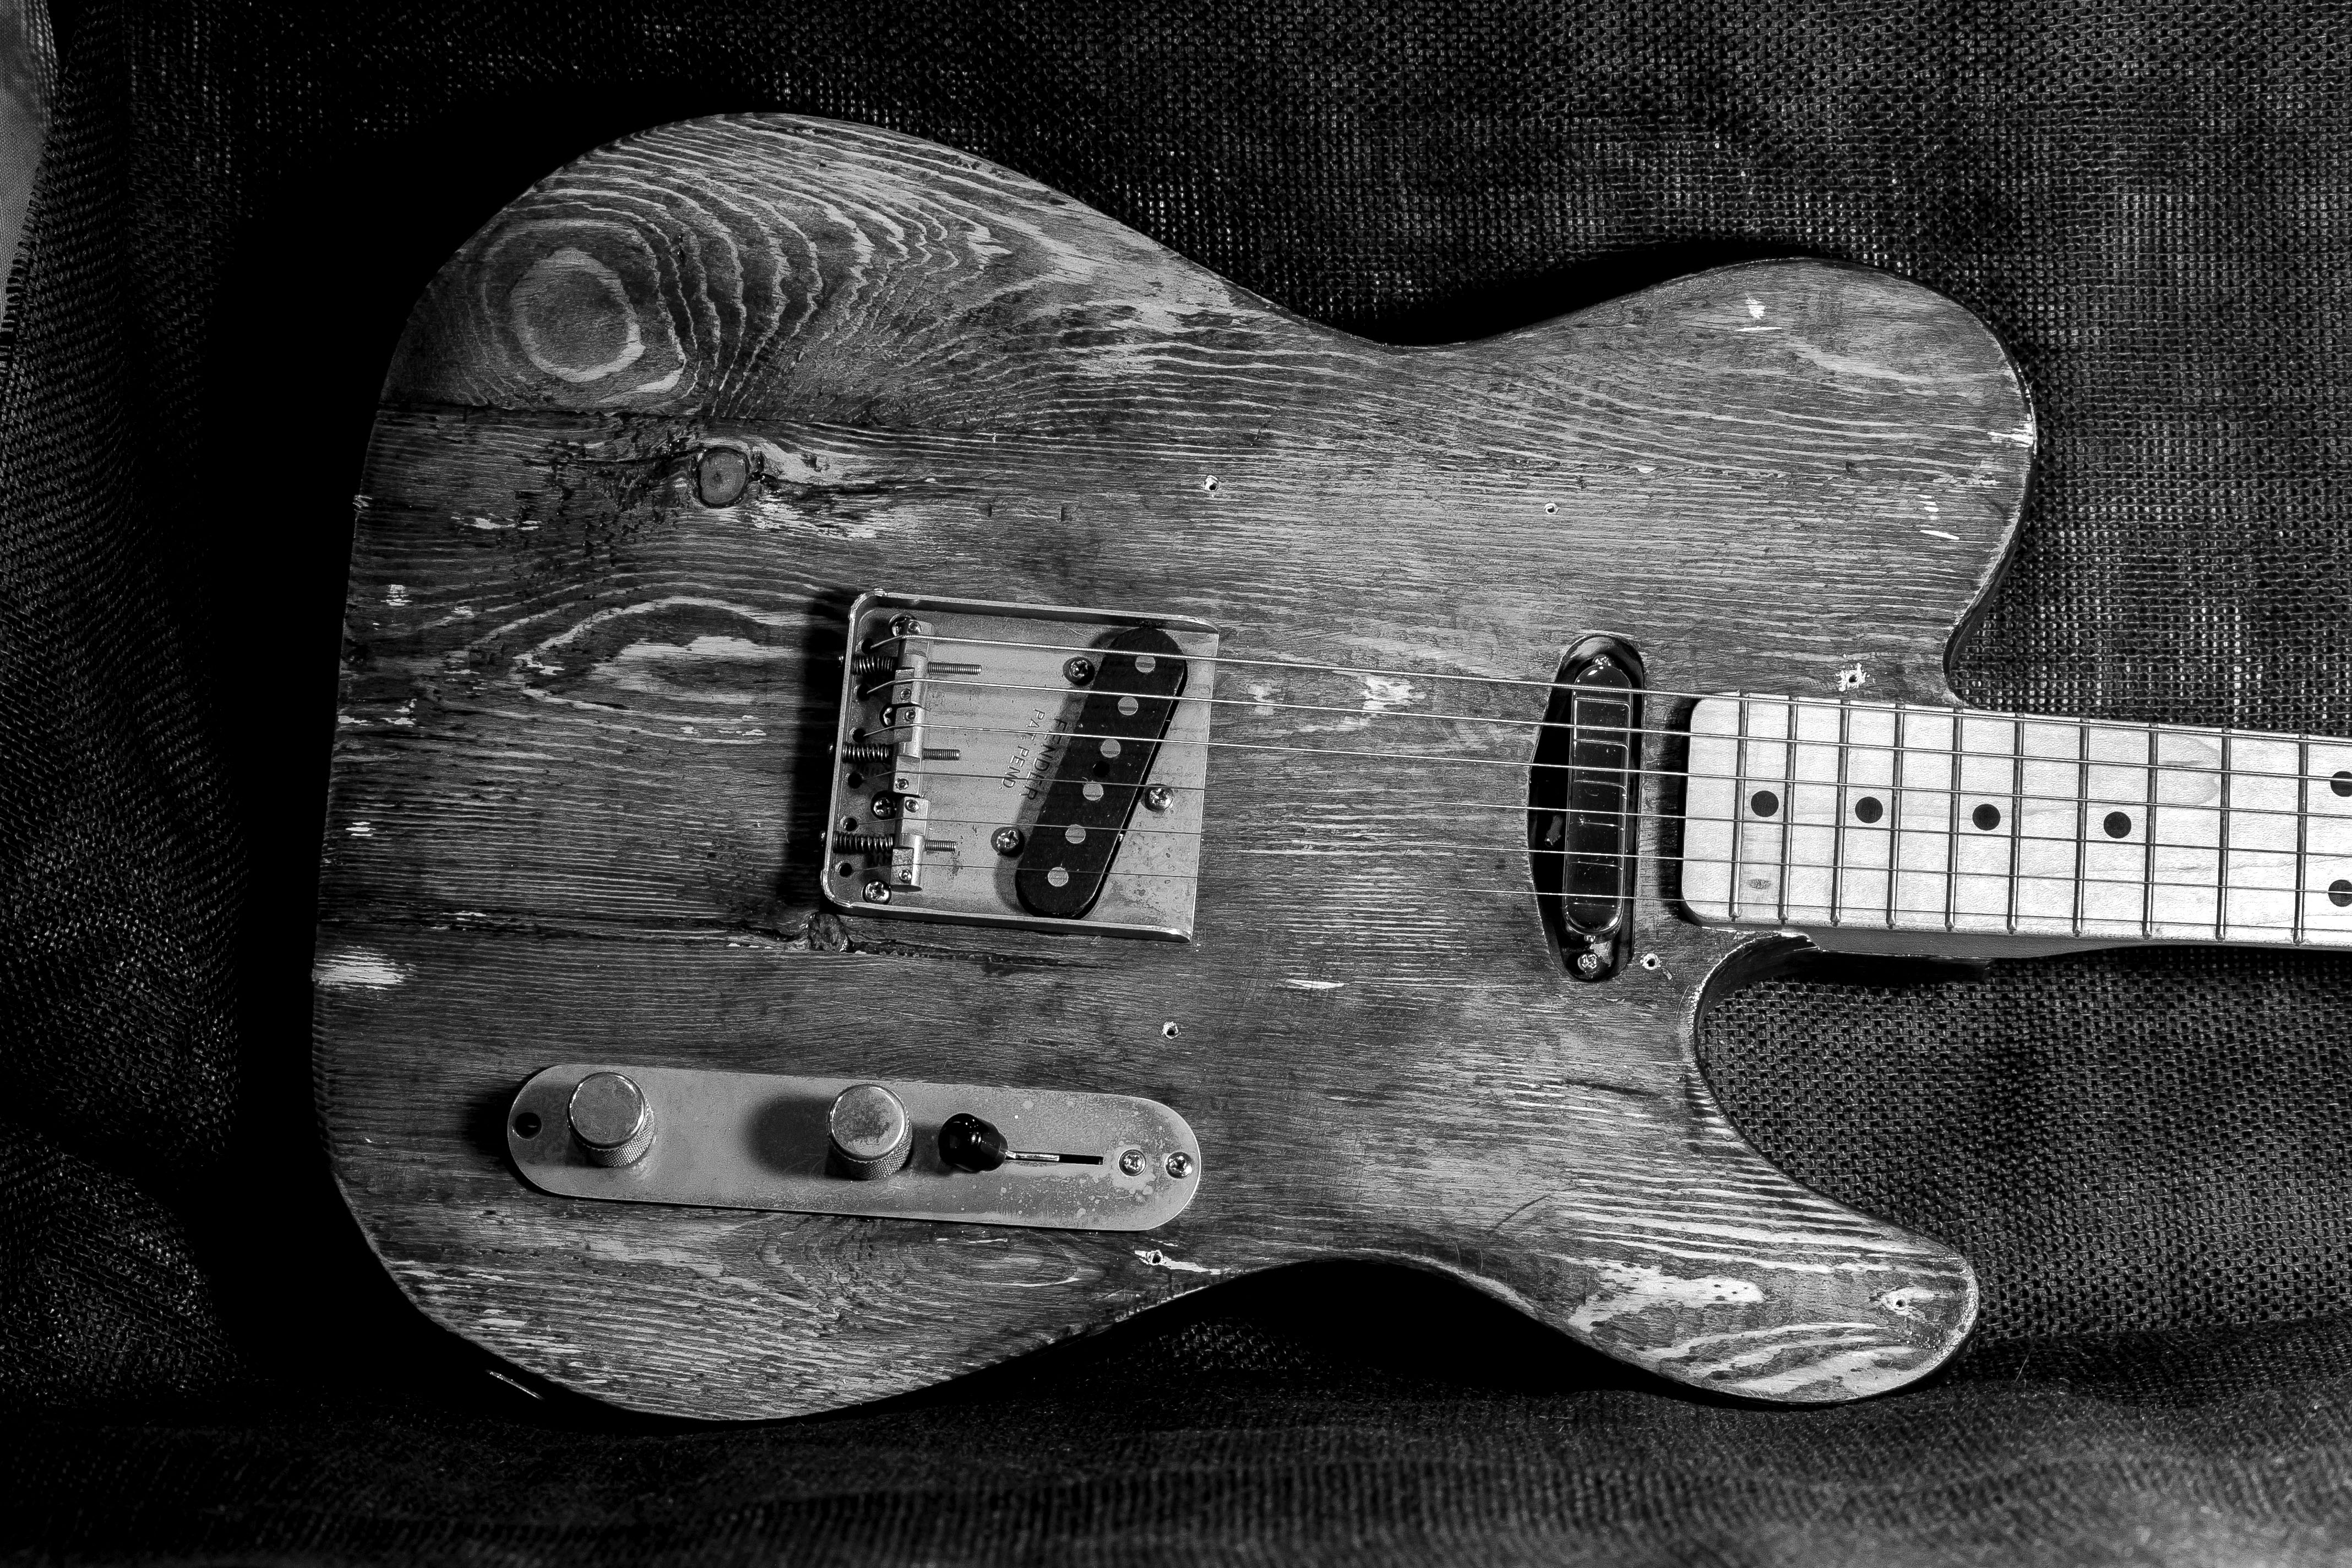 Pine telecaster front body